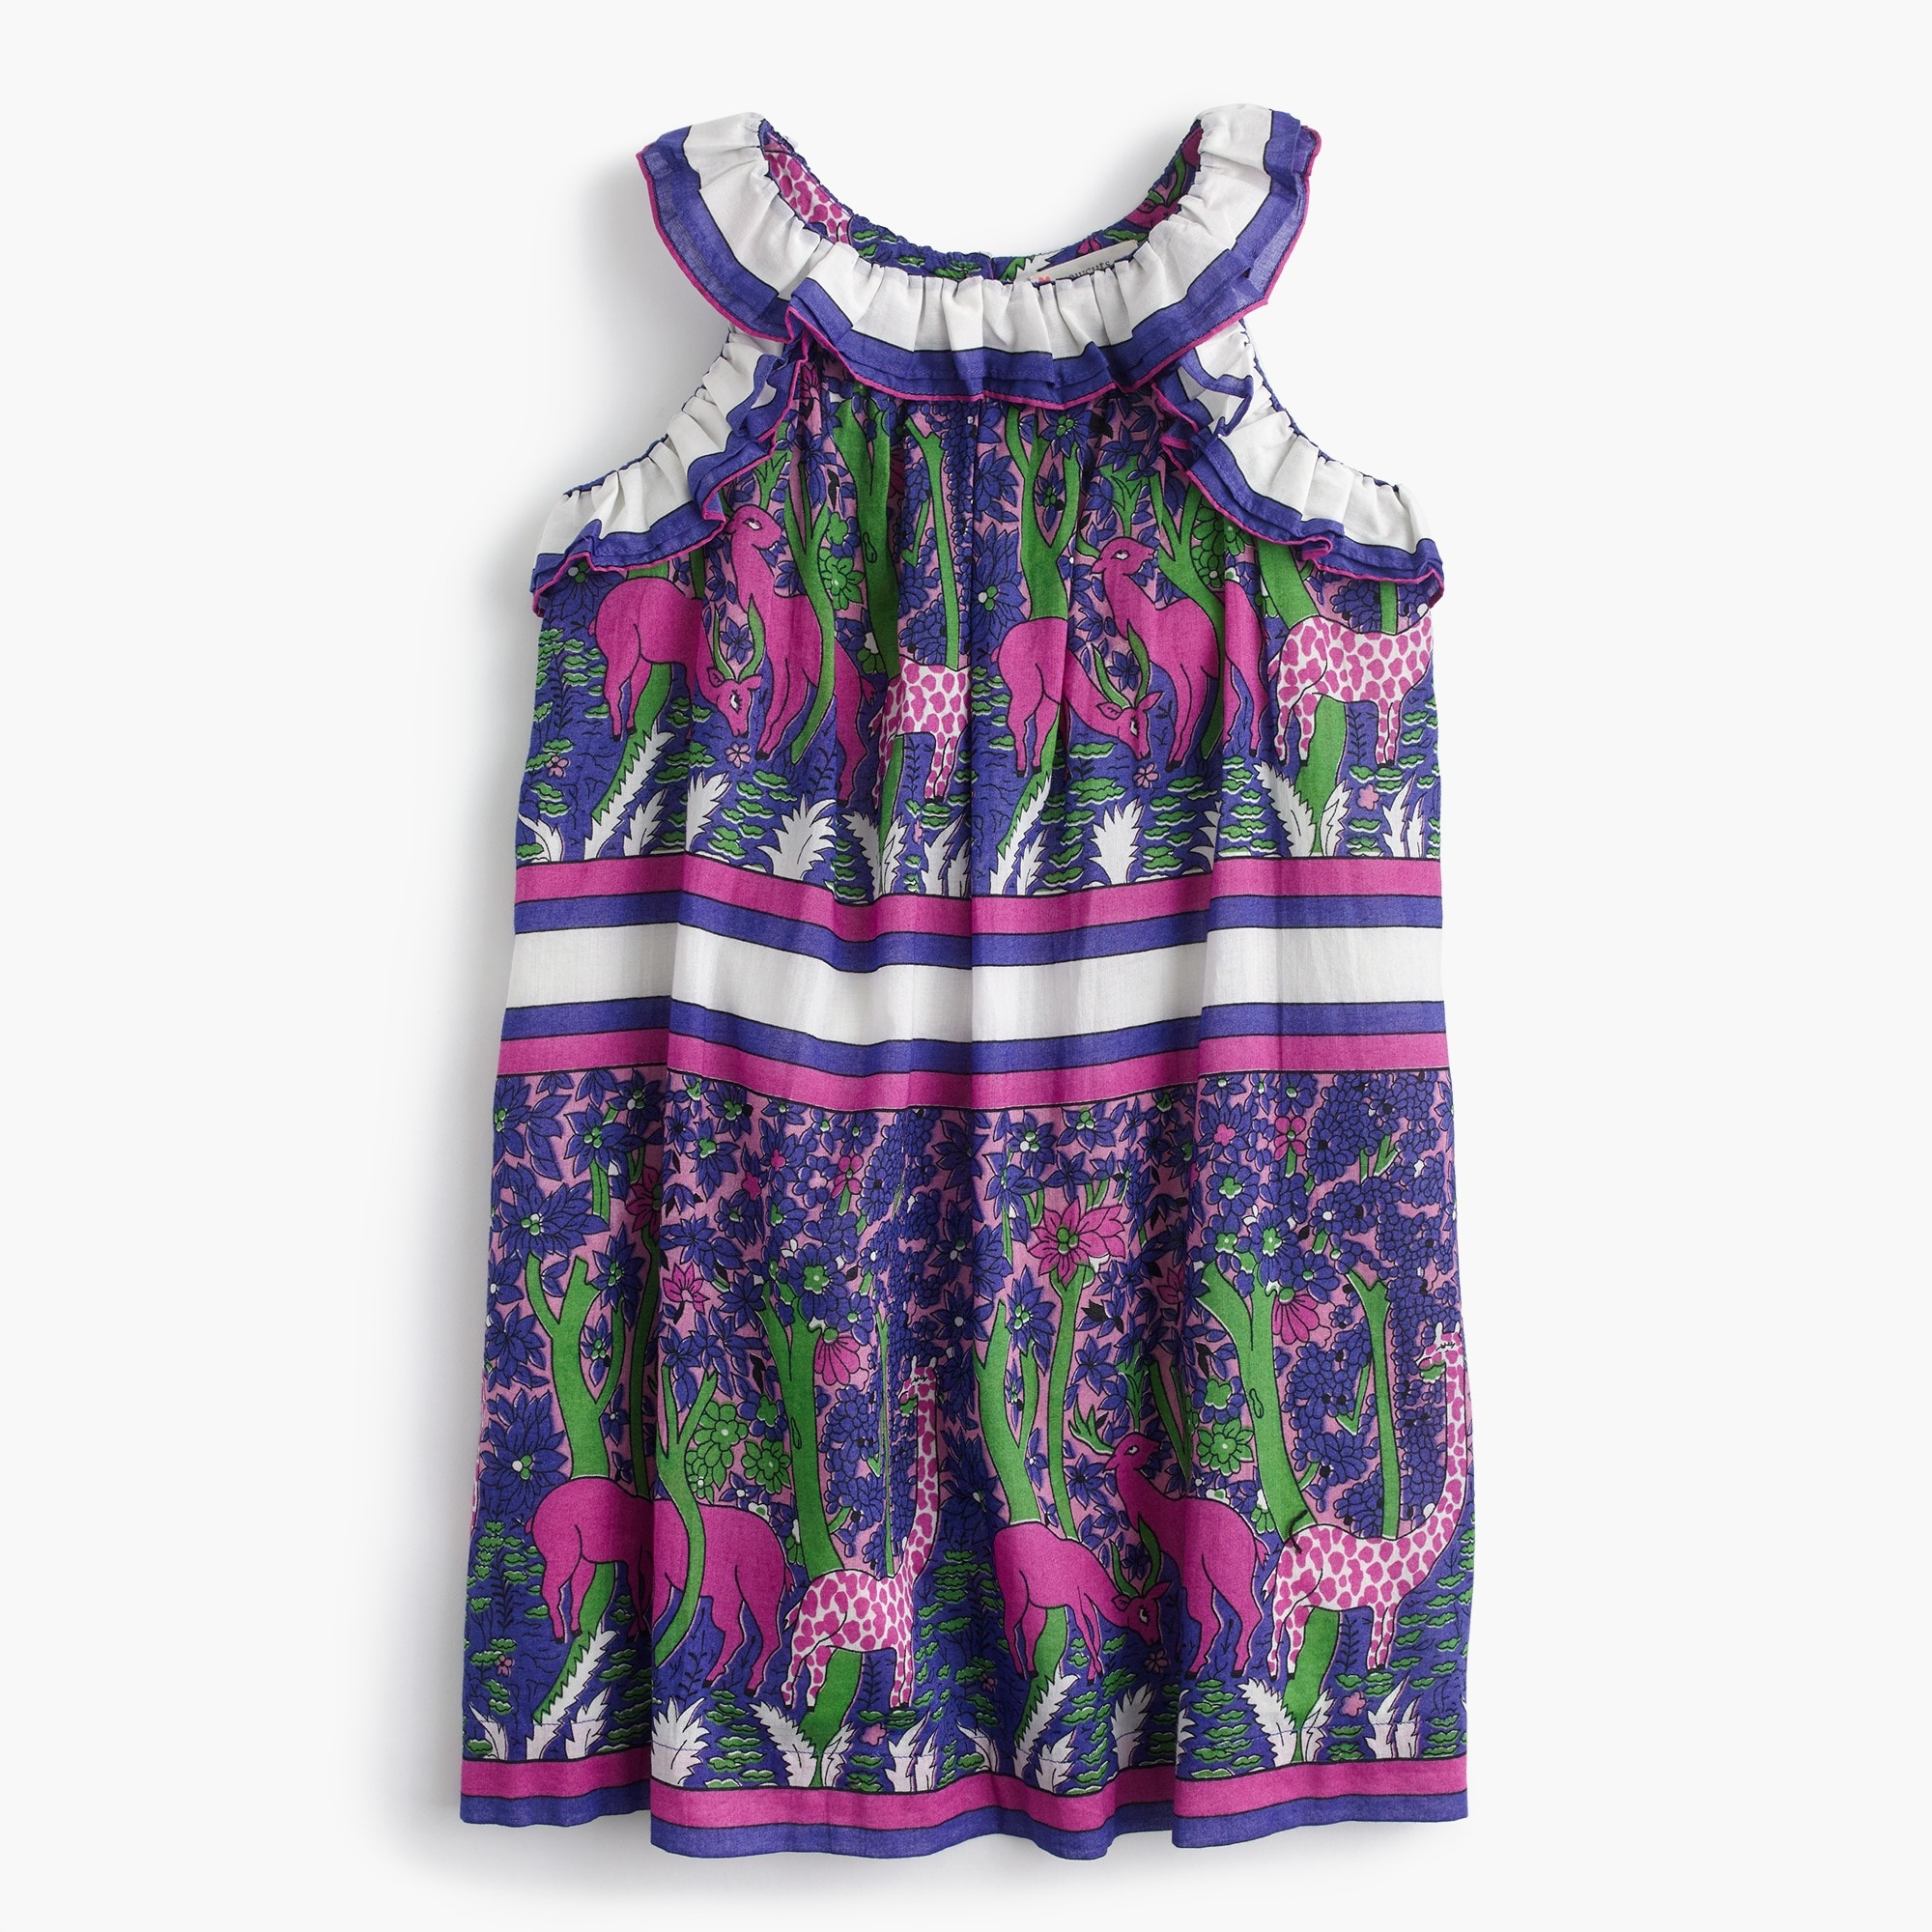 Girls' ruffly dress in menagerie print